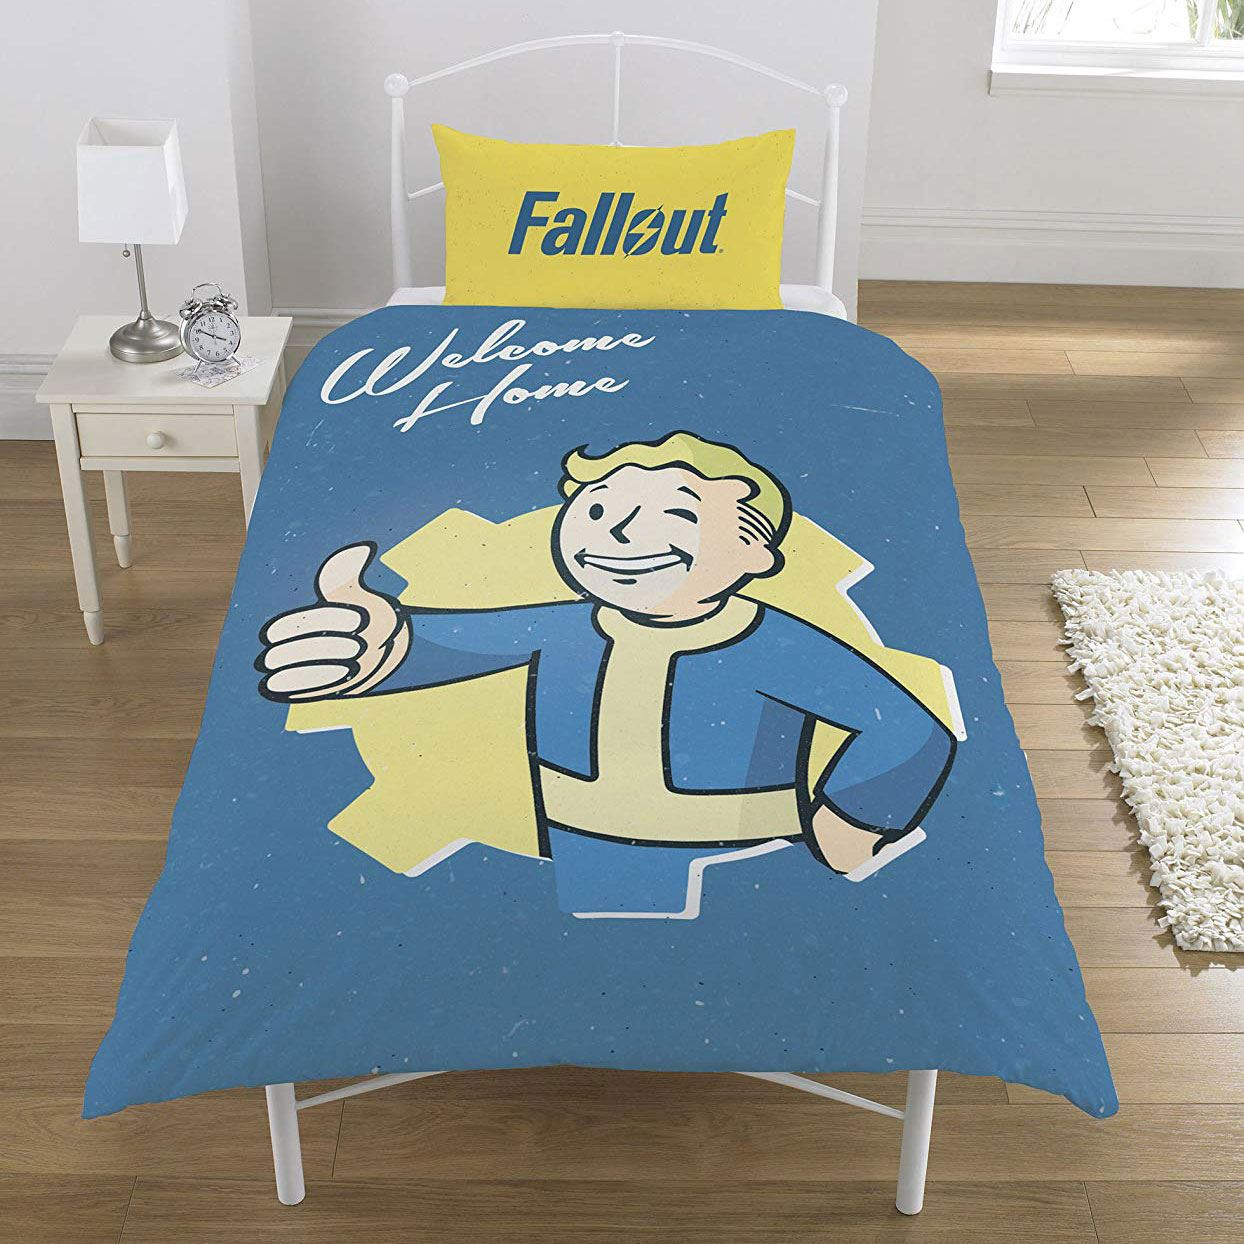 Fallout Vault Boy Single Duvet Cover Set Reversible Kids